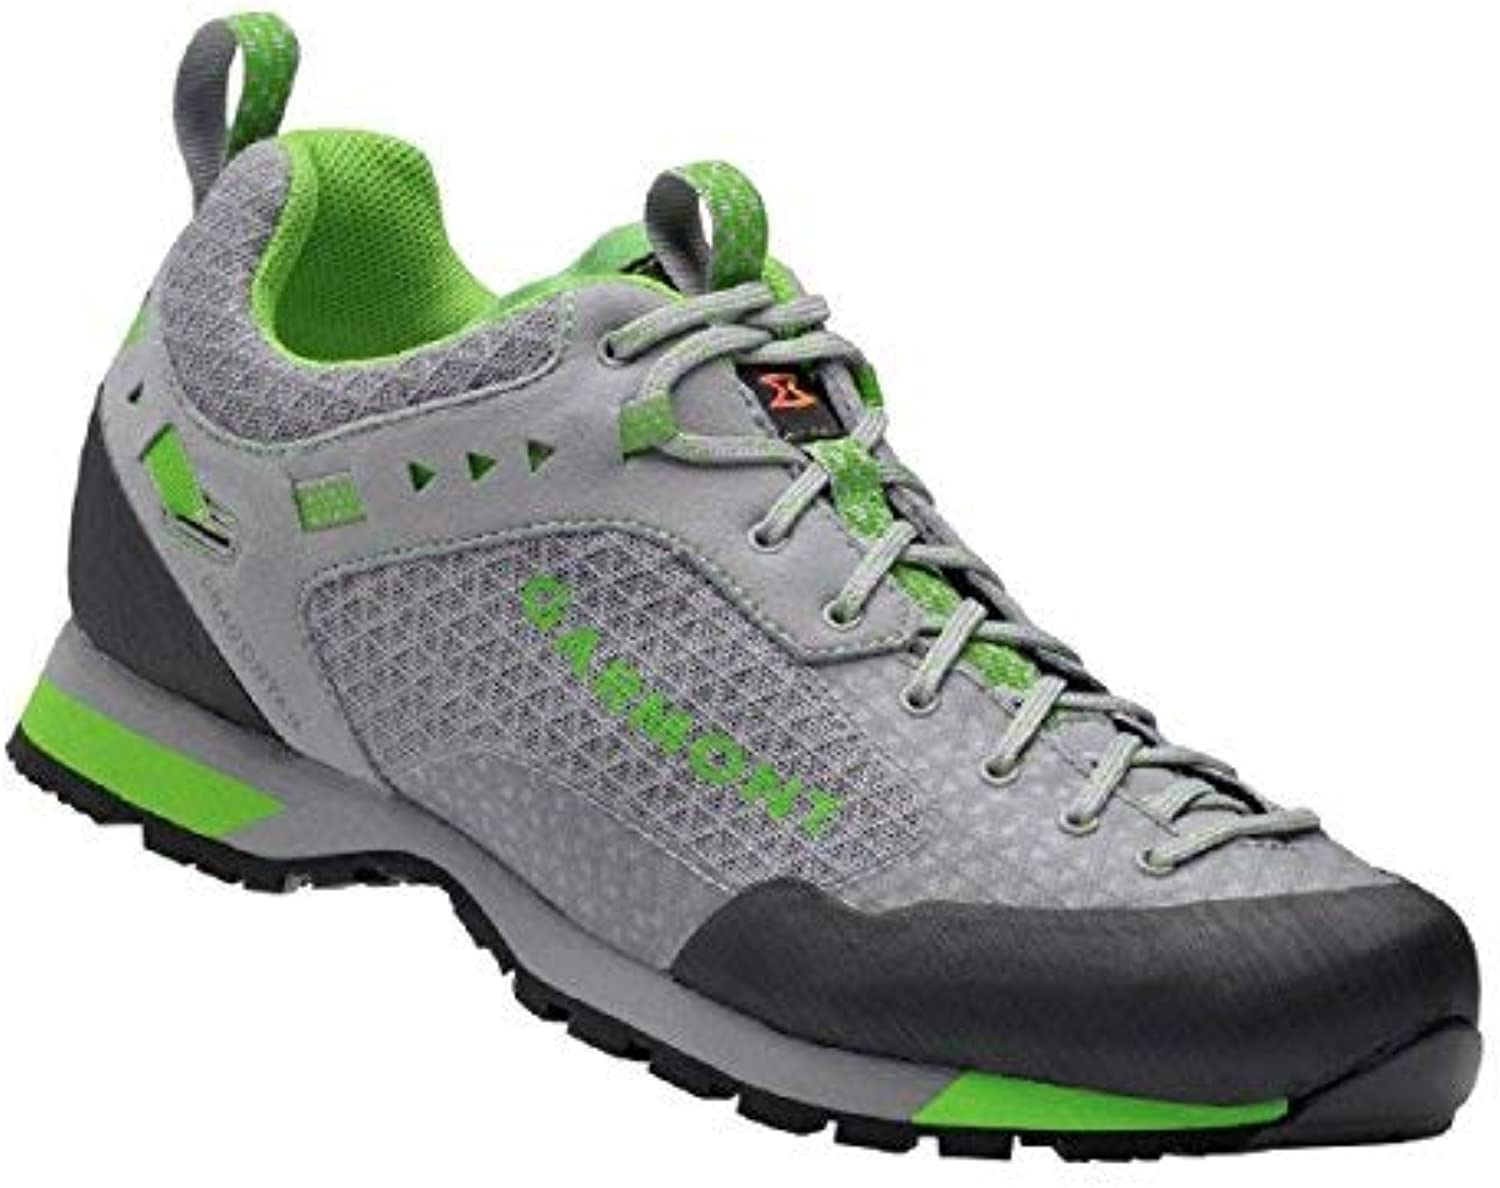 Garmont Dragontail N.Air.G Grey Green Hiking shoes (481213 201)